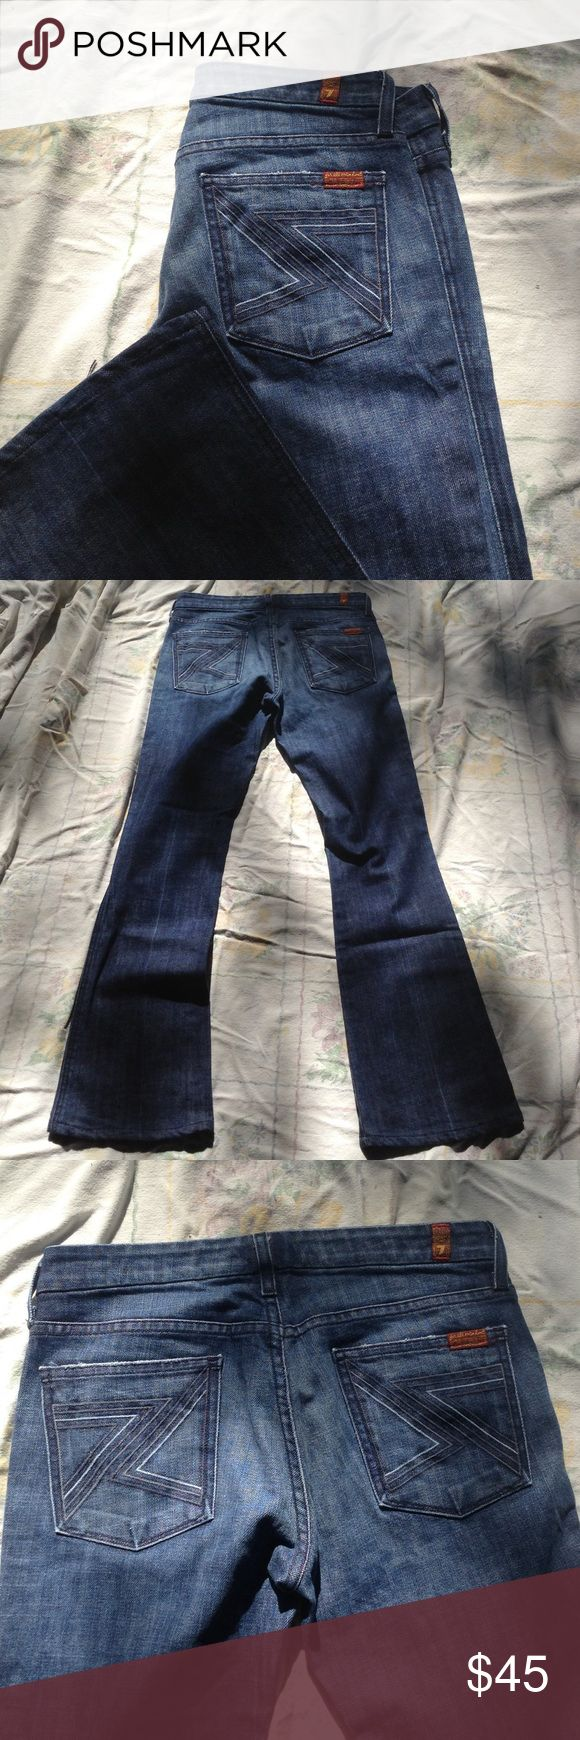 """7 for all Mankind Denim Flare Jeans Very sexy high quality 7 for all mankind jeans with embroidered back pocket details. American made, size 28, style is """"FLYNT"""". Style number U17MJ080U-055U. 🌻flat measurements🌻waist: 16"""" // hip: 18"""" // rise: 8"""" // inseam: 30"""" // 7 For All Mankind Jeans Flare & Wide Leg"""